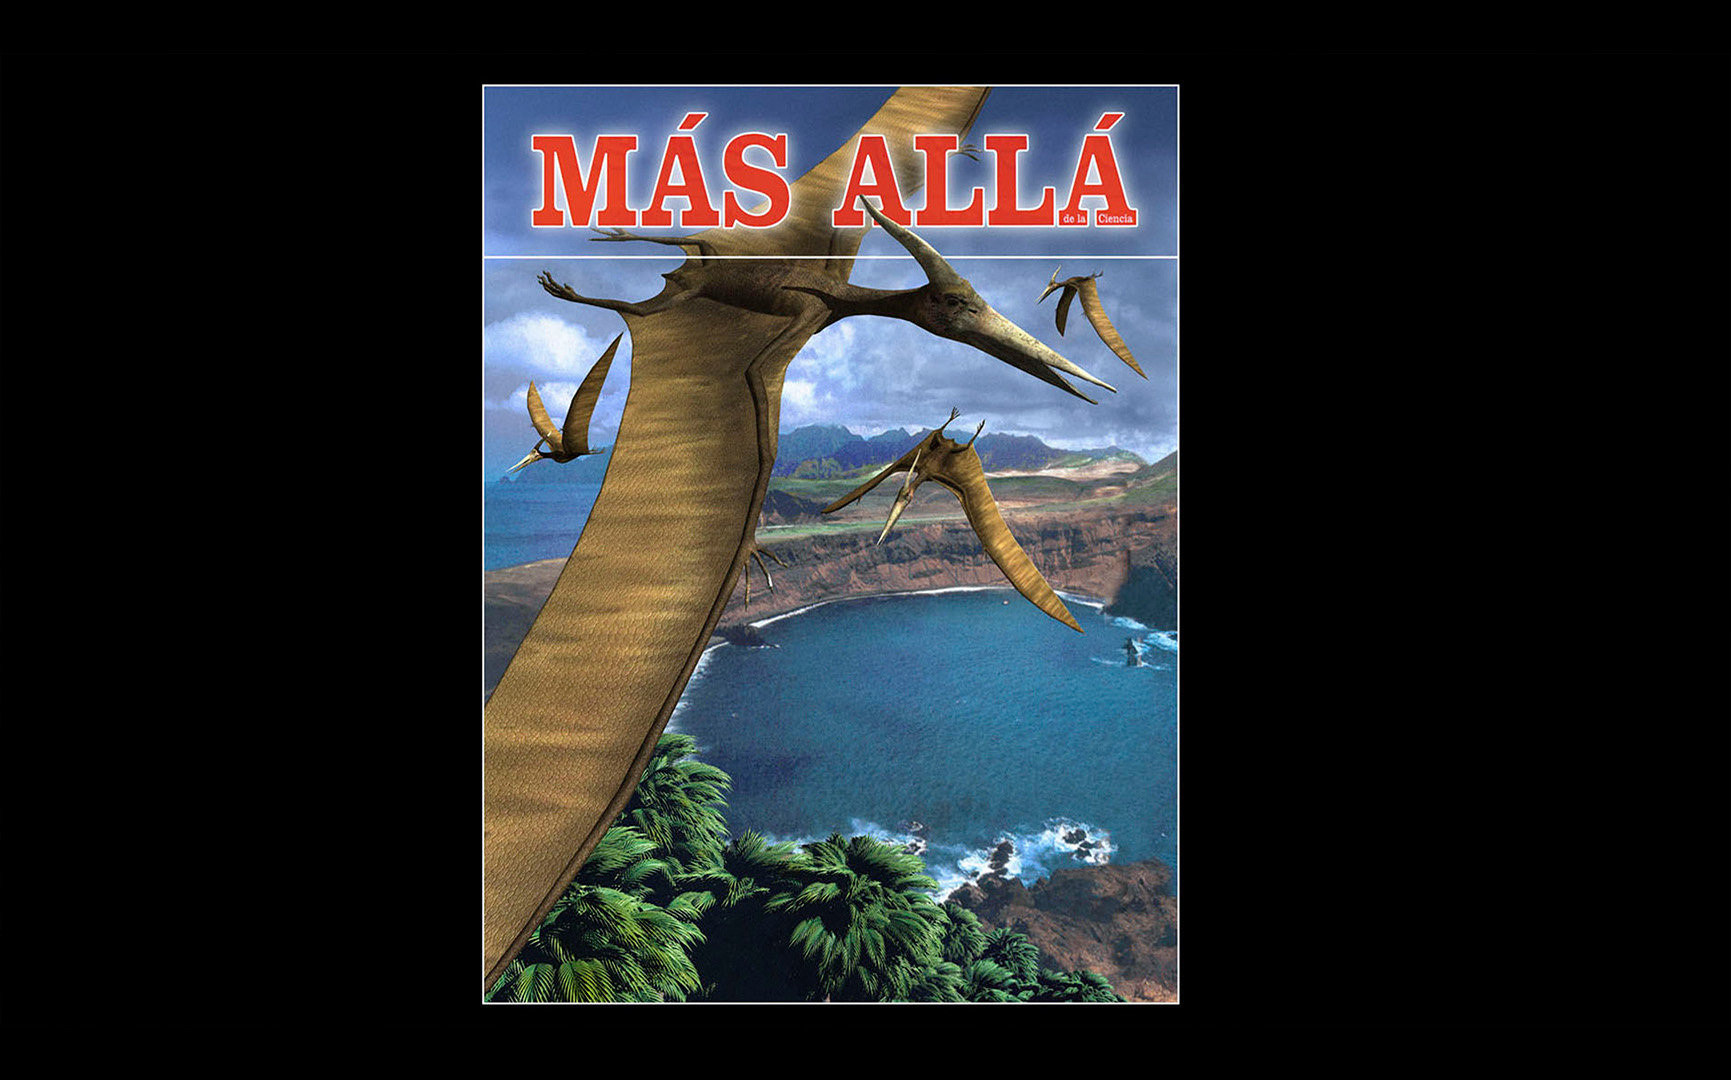 Pterodactyls at present time / MC publishers / 3D modeling and llustration